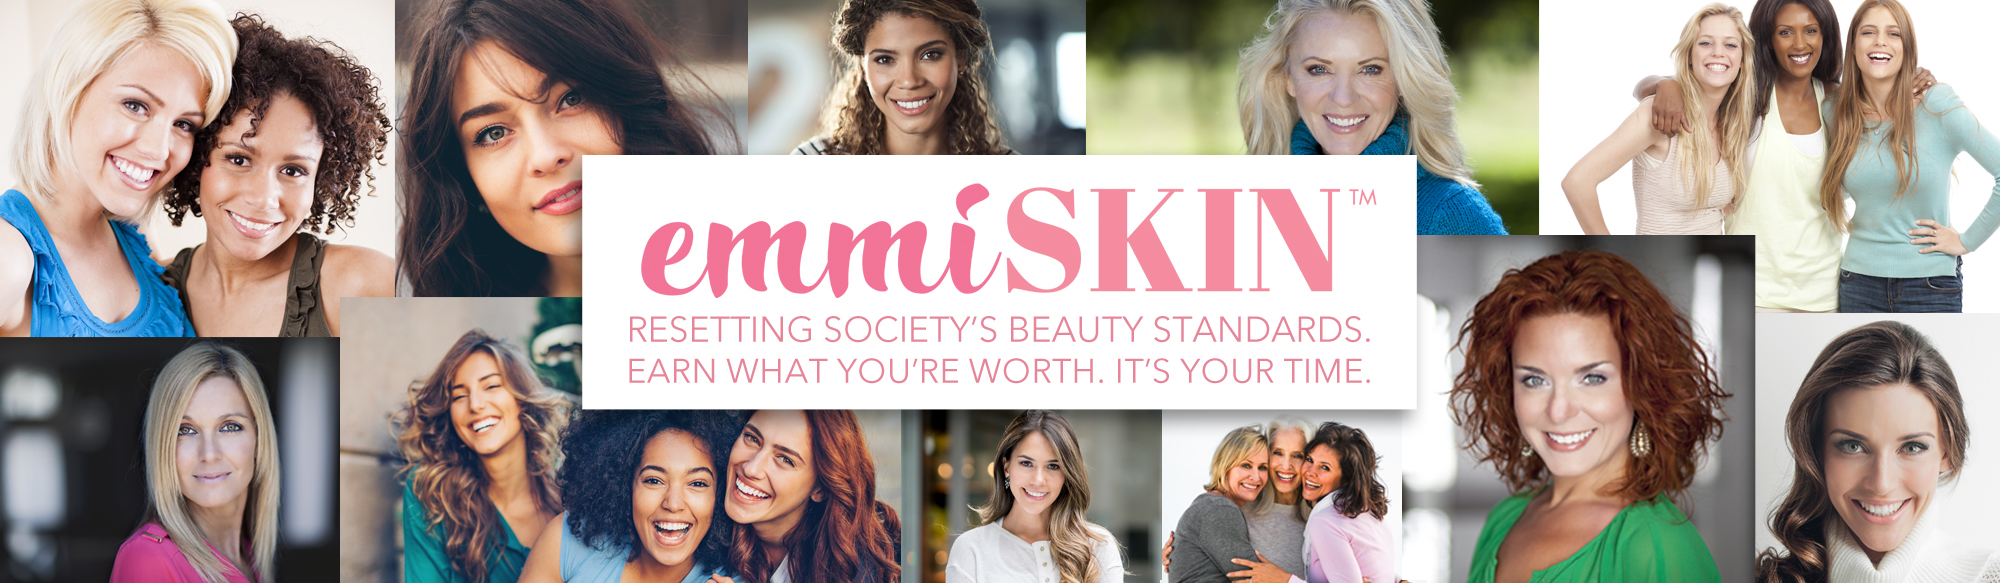 emmiSKIN, About Us, Beauty, Skincare